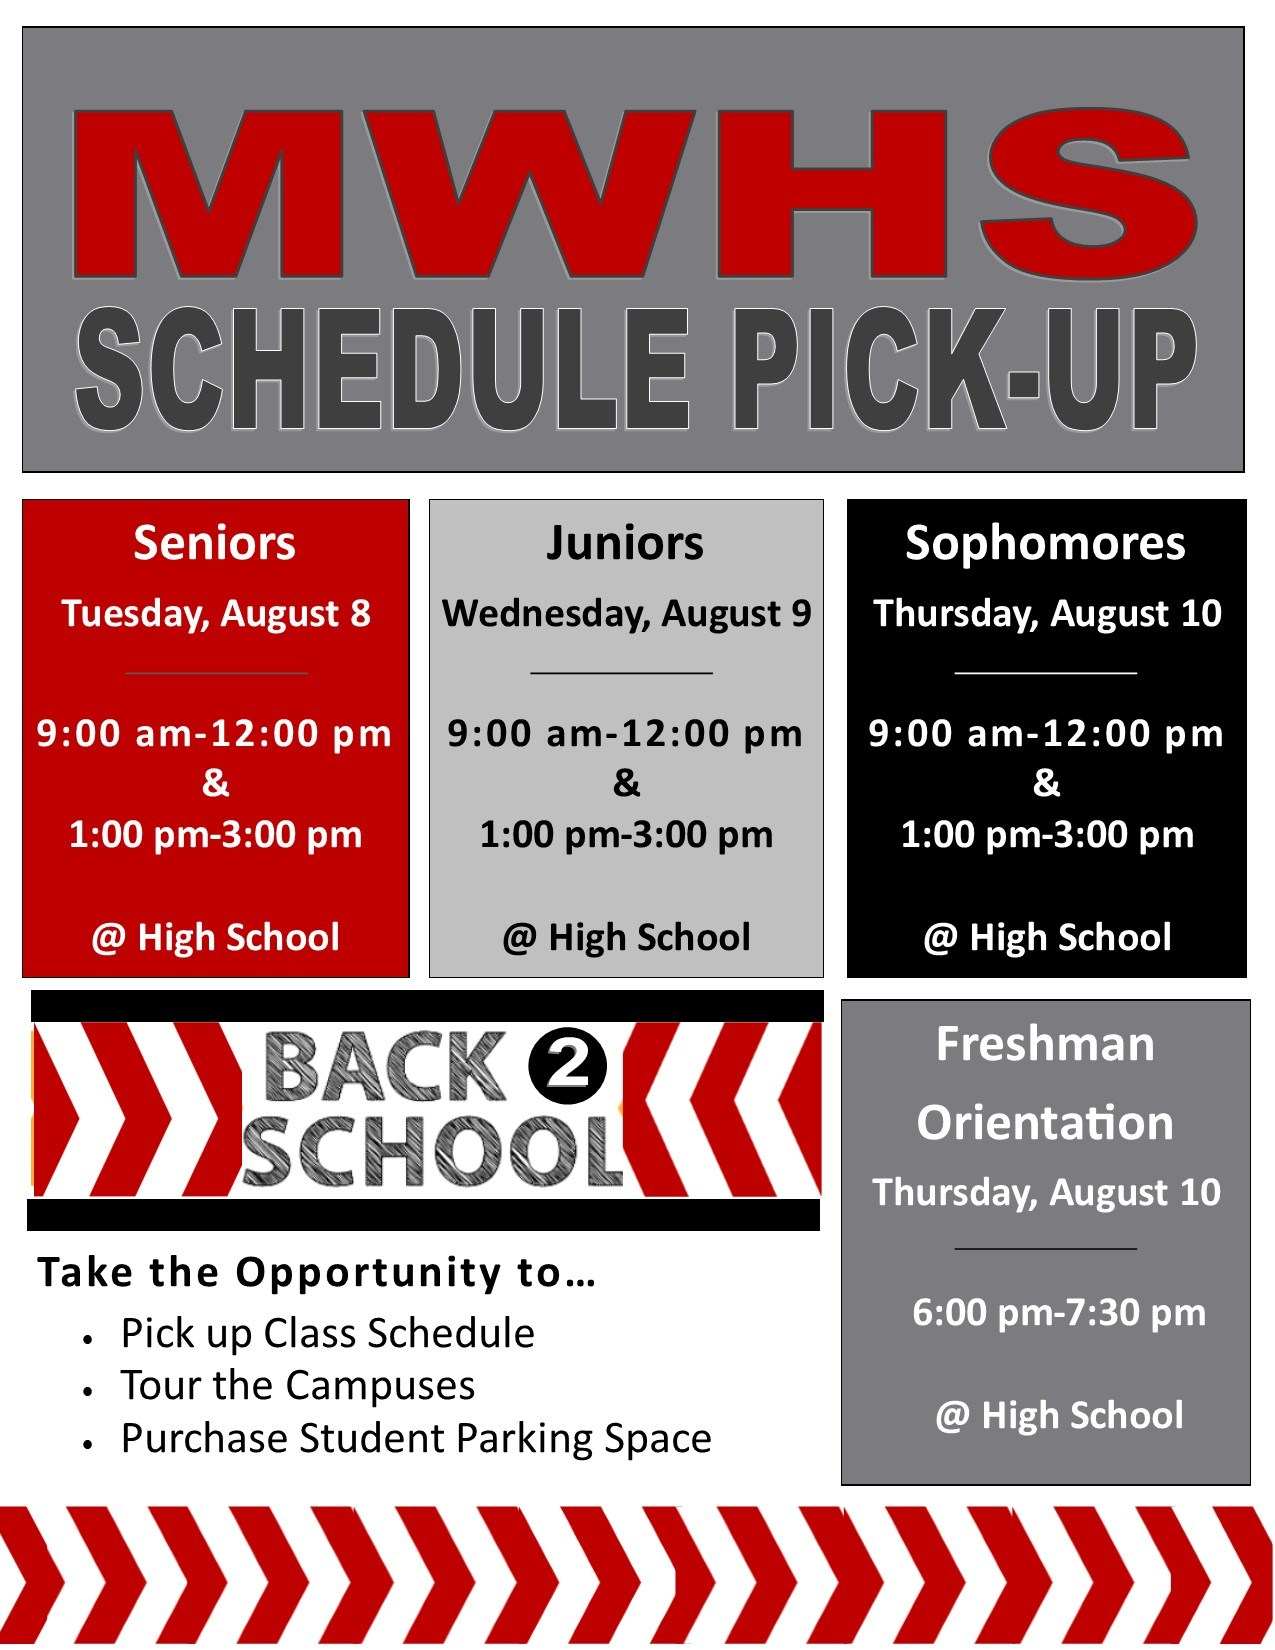 High School Class Schedule Pick Up Times and Dates